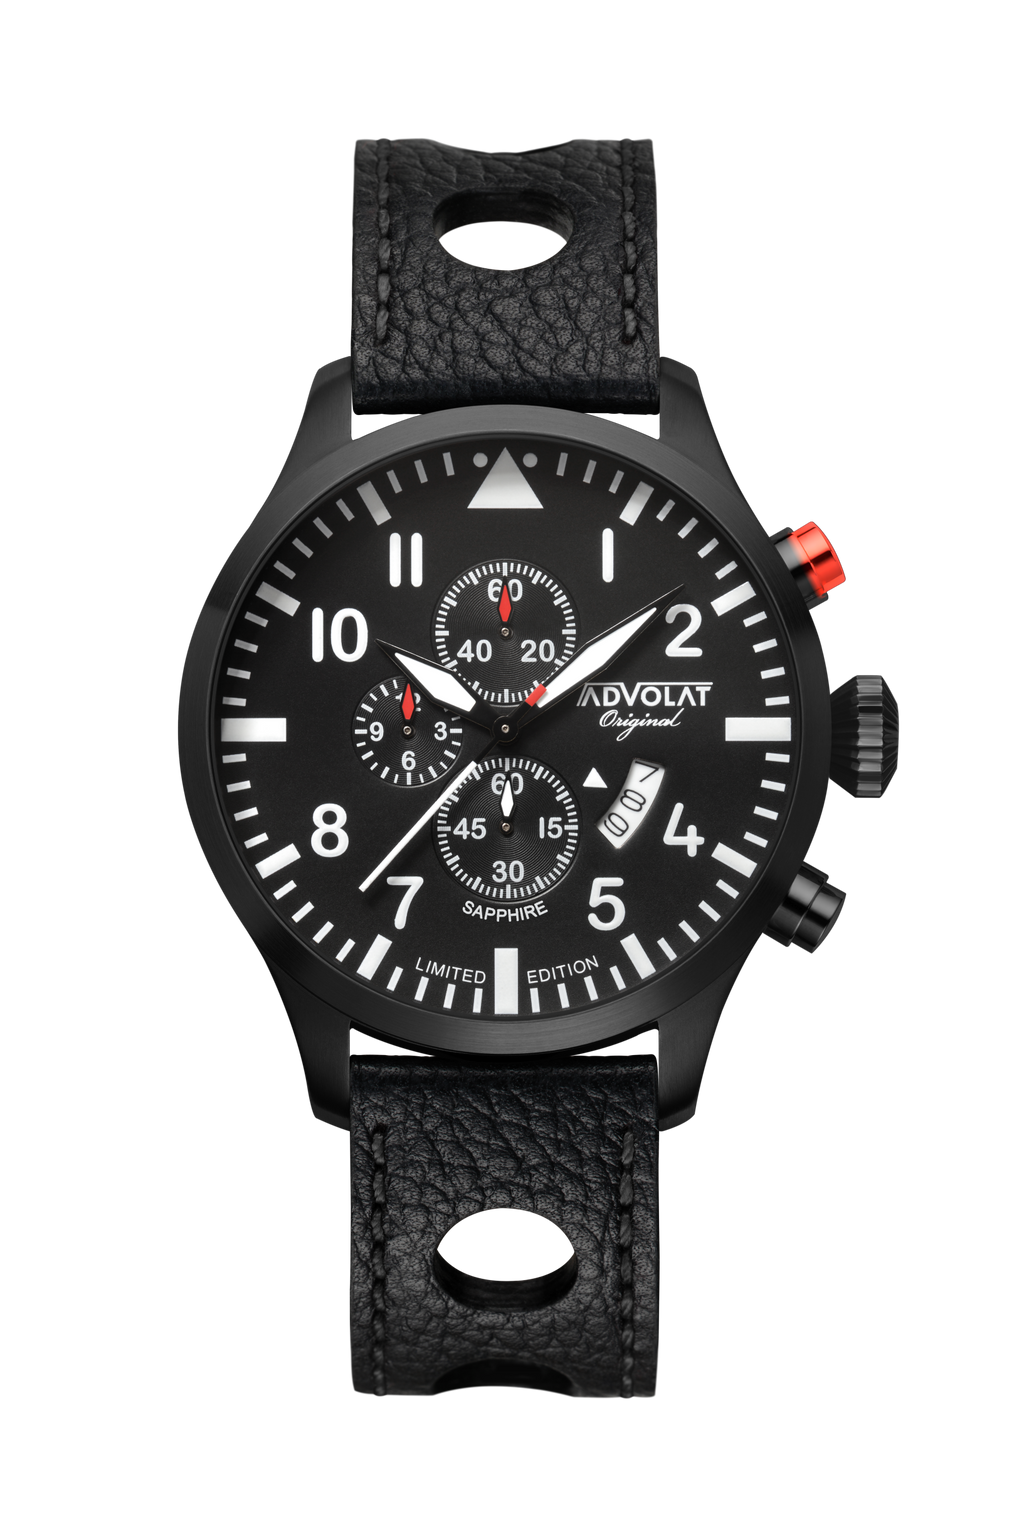 FLIEGER 2 Mil-Spec